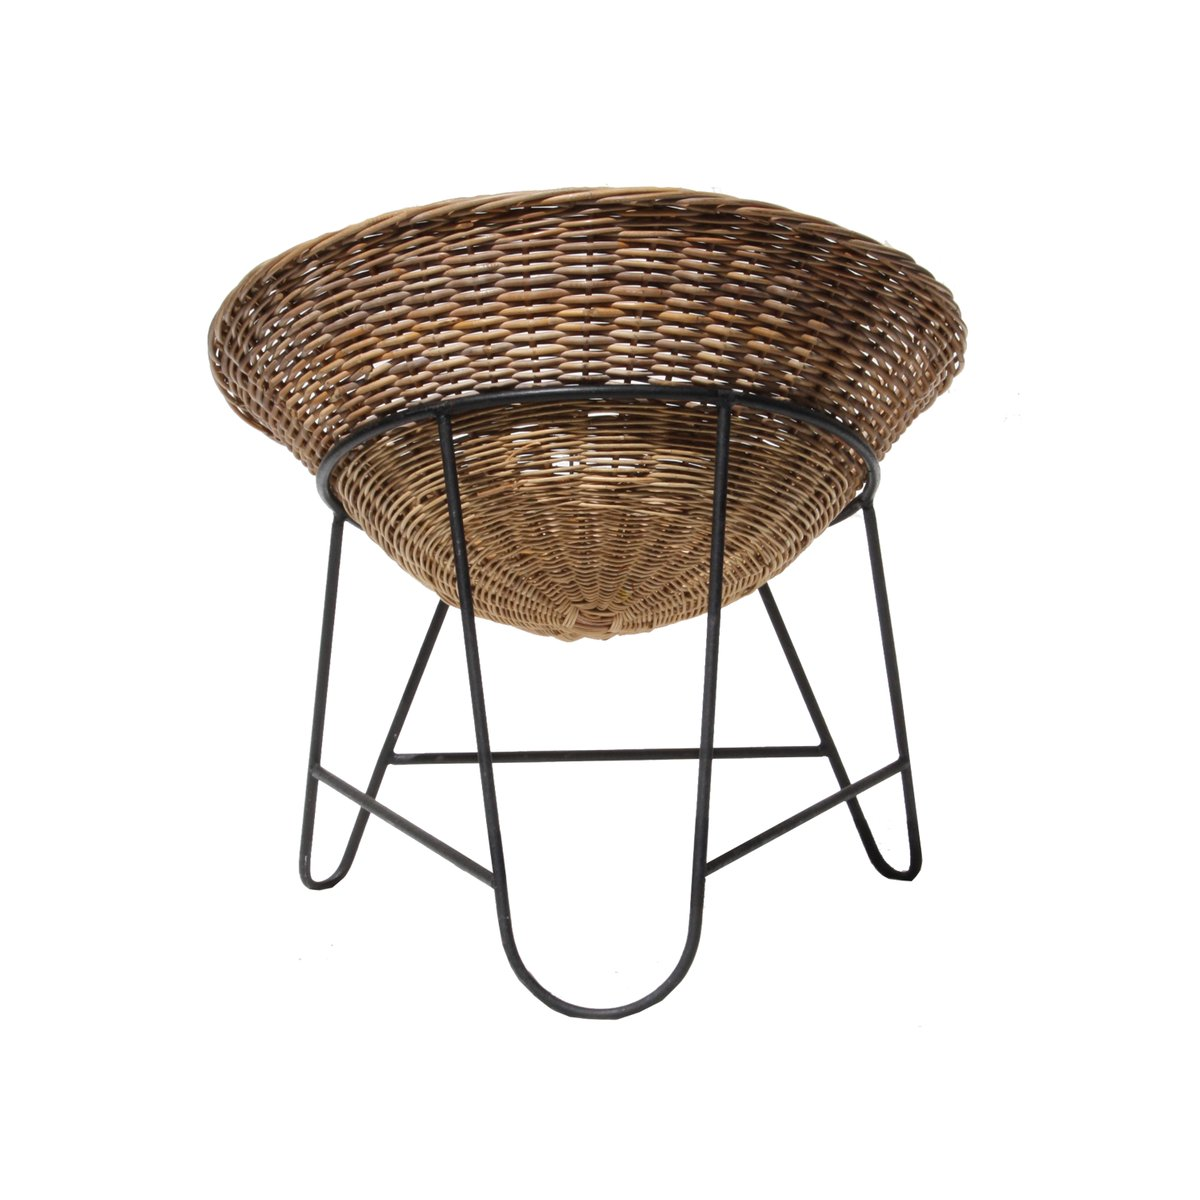 Mid Century French Rattan Basket Chair 1950s for sale at